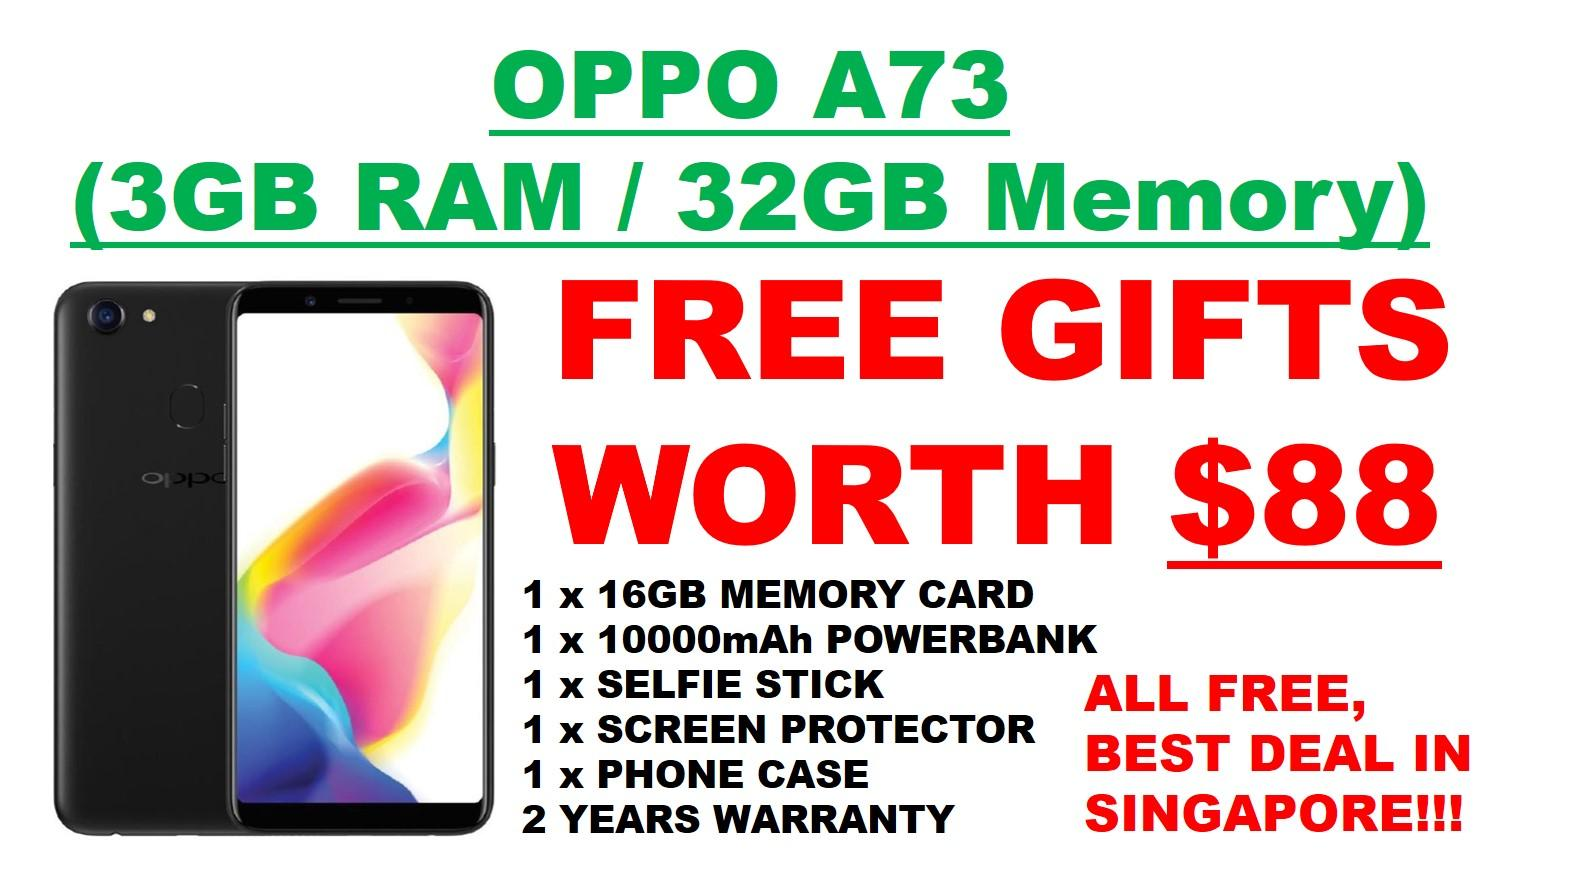 Discount Oppo A73 Free Gifts Worth 88 Singapore